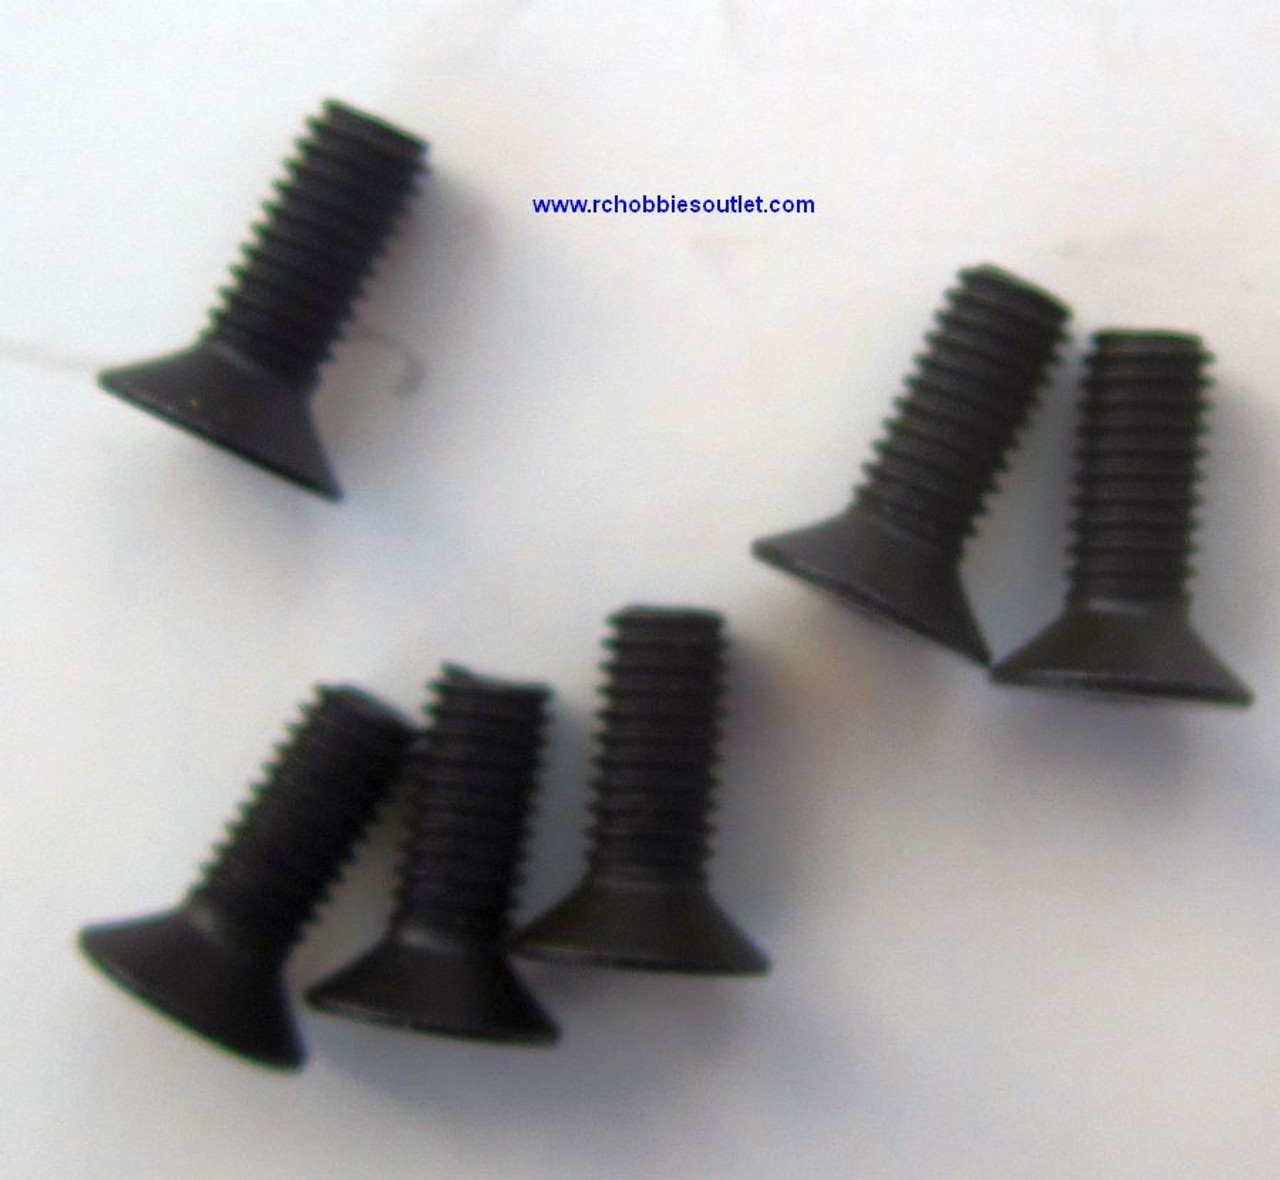 60111 Countersunk Mechanical Screw 3*8mm HSP ( 6 pieces)